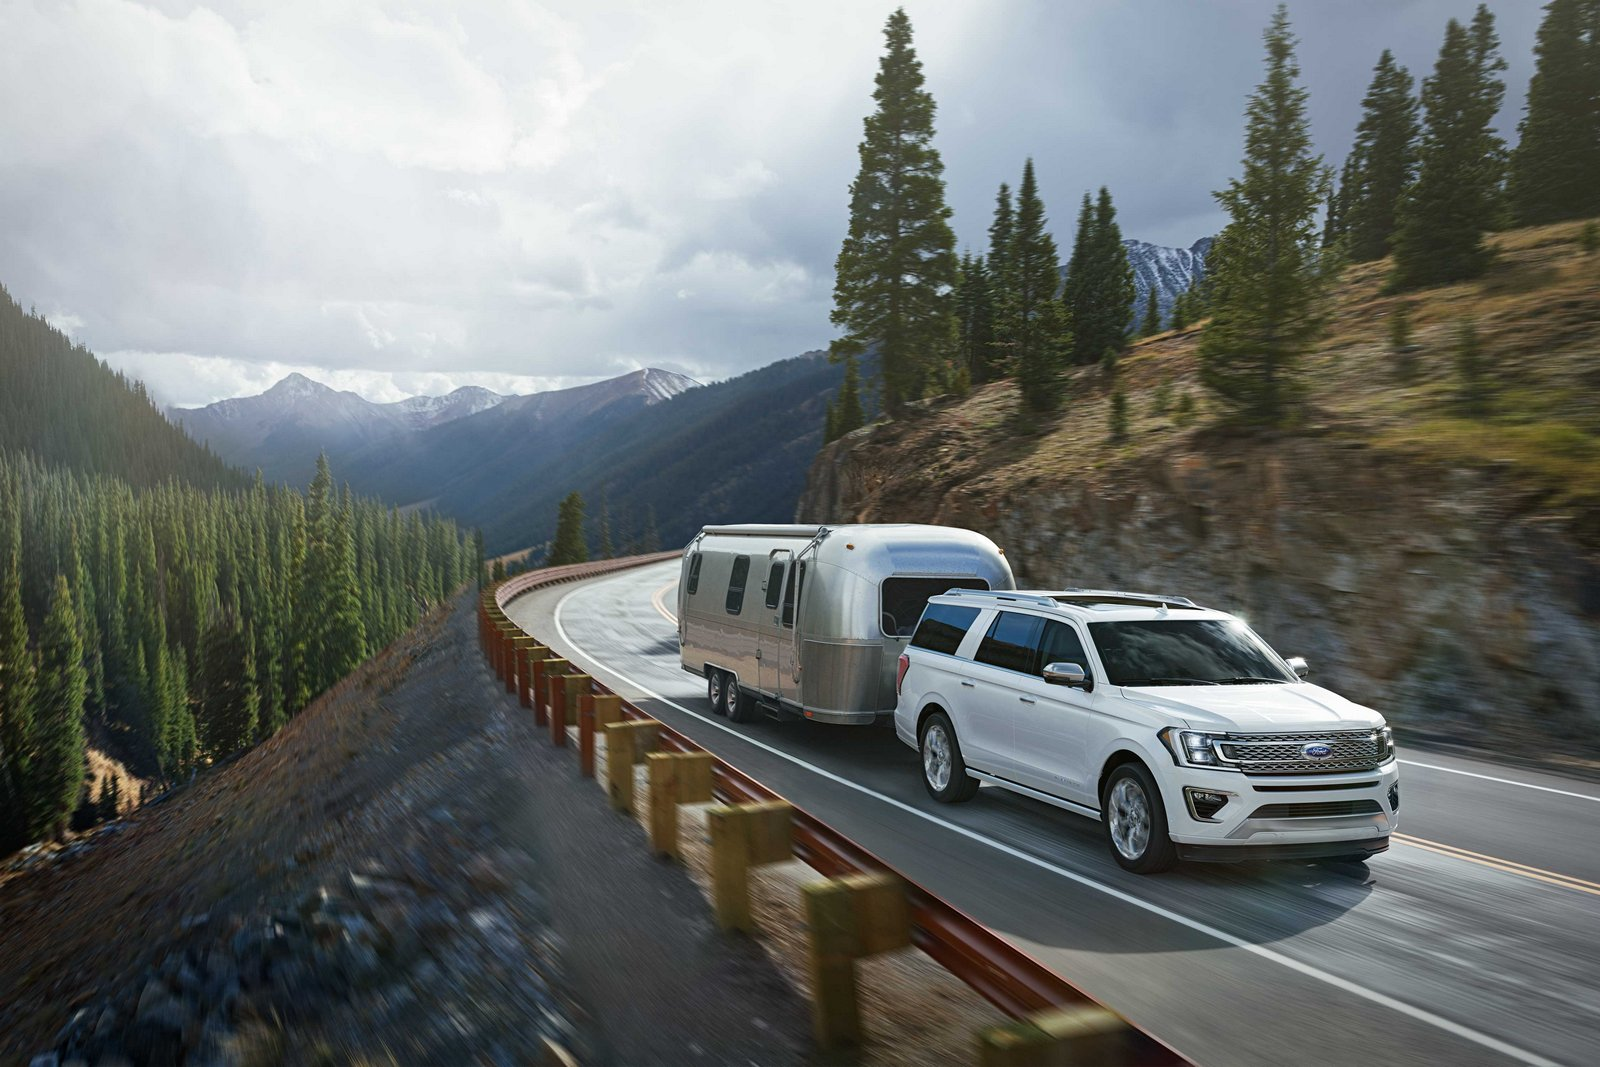 The all-new Ford Expedition, with expected best-in-class towing, features available Blind Spot Information System with trailer tow that monitors a driver's blind spots, adjusting the monitored areas based on the length of a camper, boat or trailer.